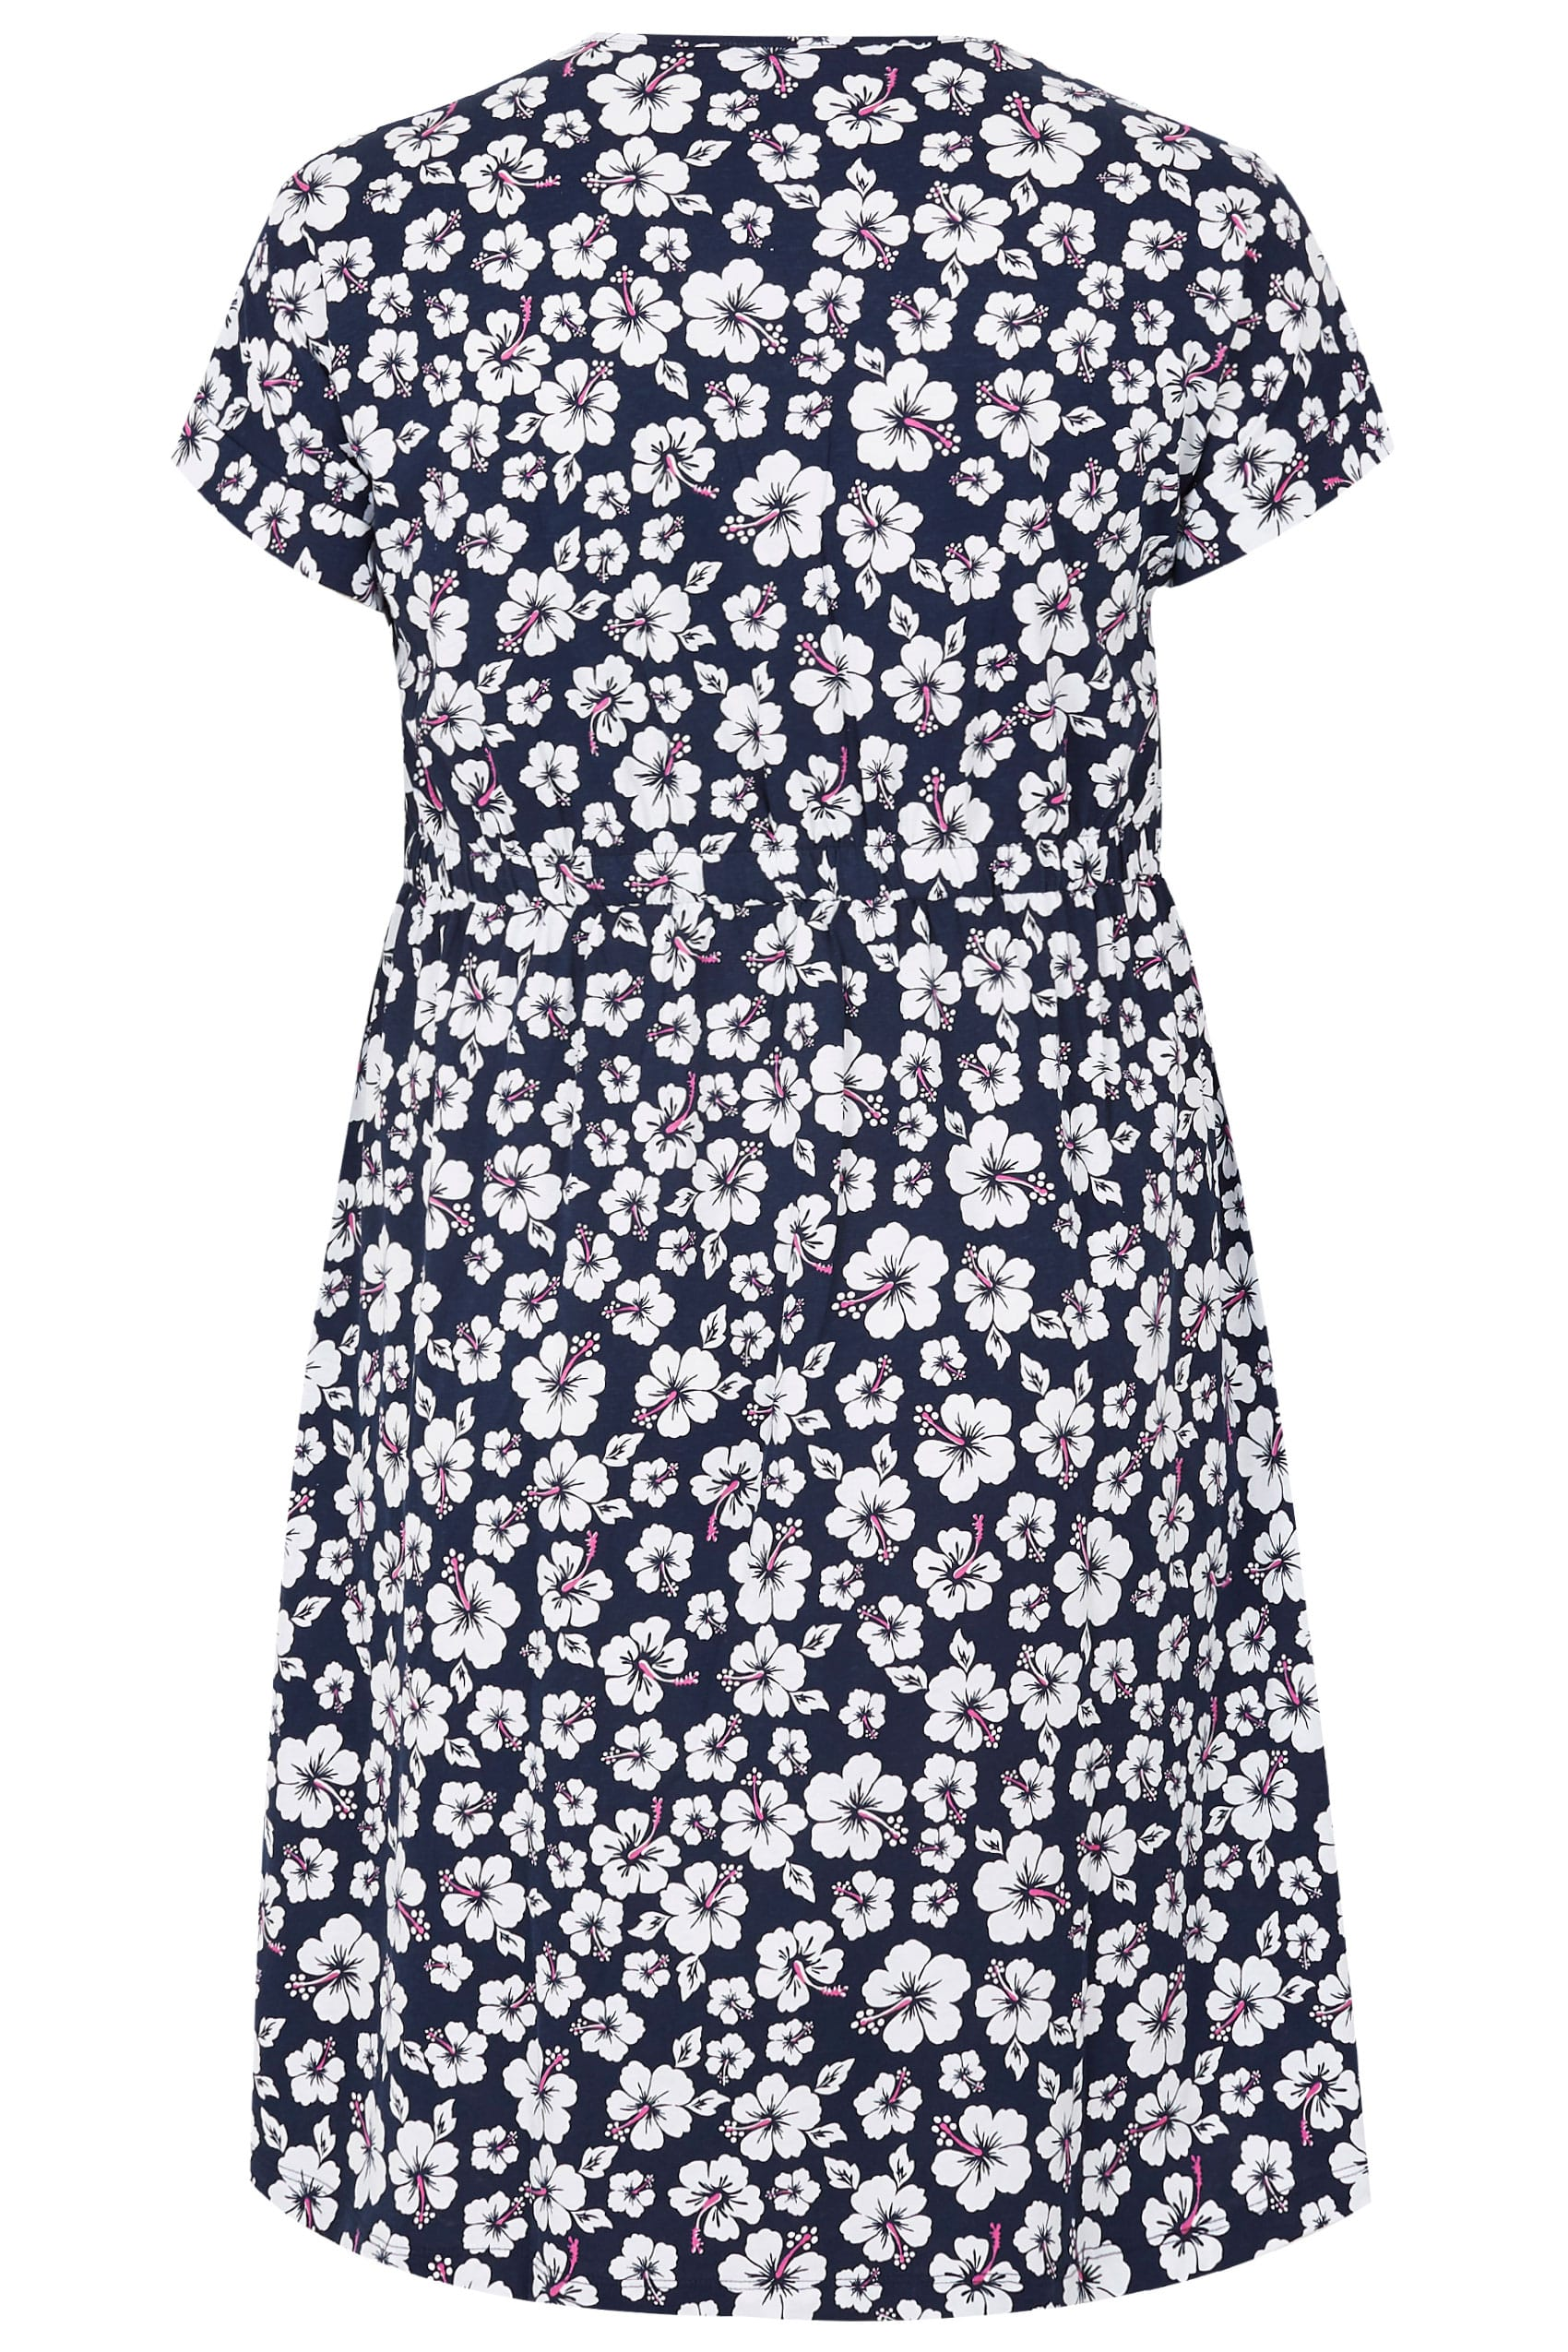 ba5160594dc Navy   White Floral Print T-Shirt Dress With Pockets   Elasticated Waistband